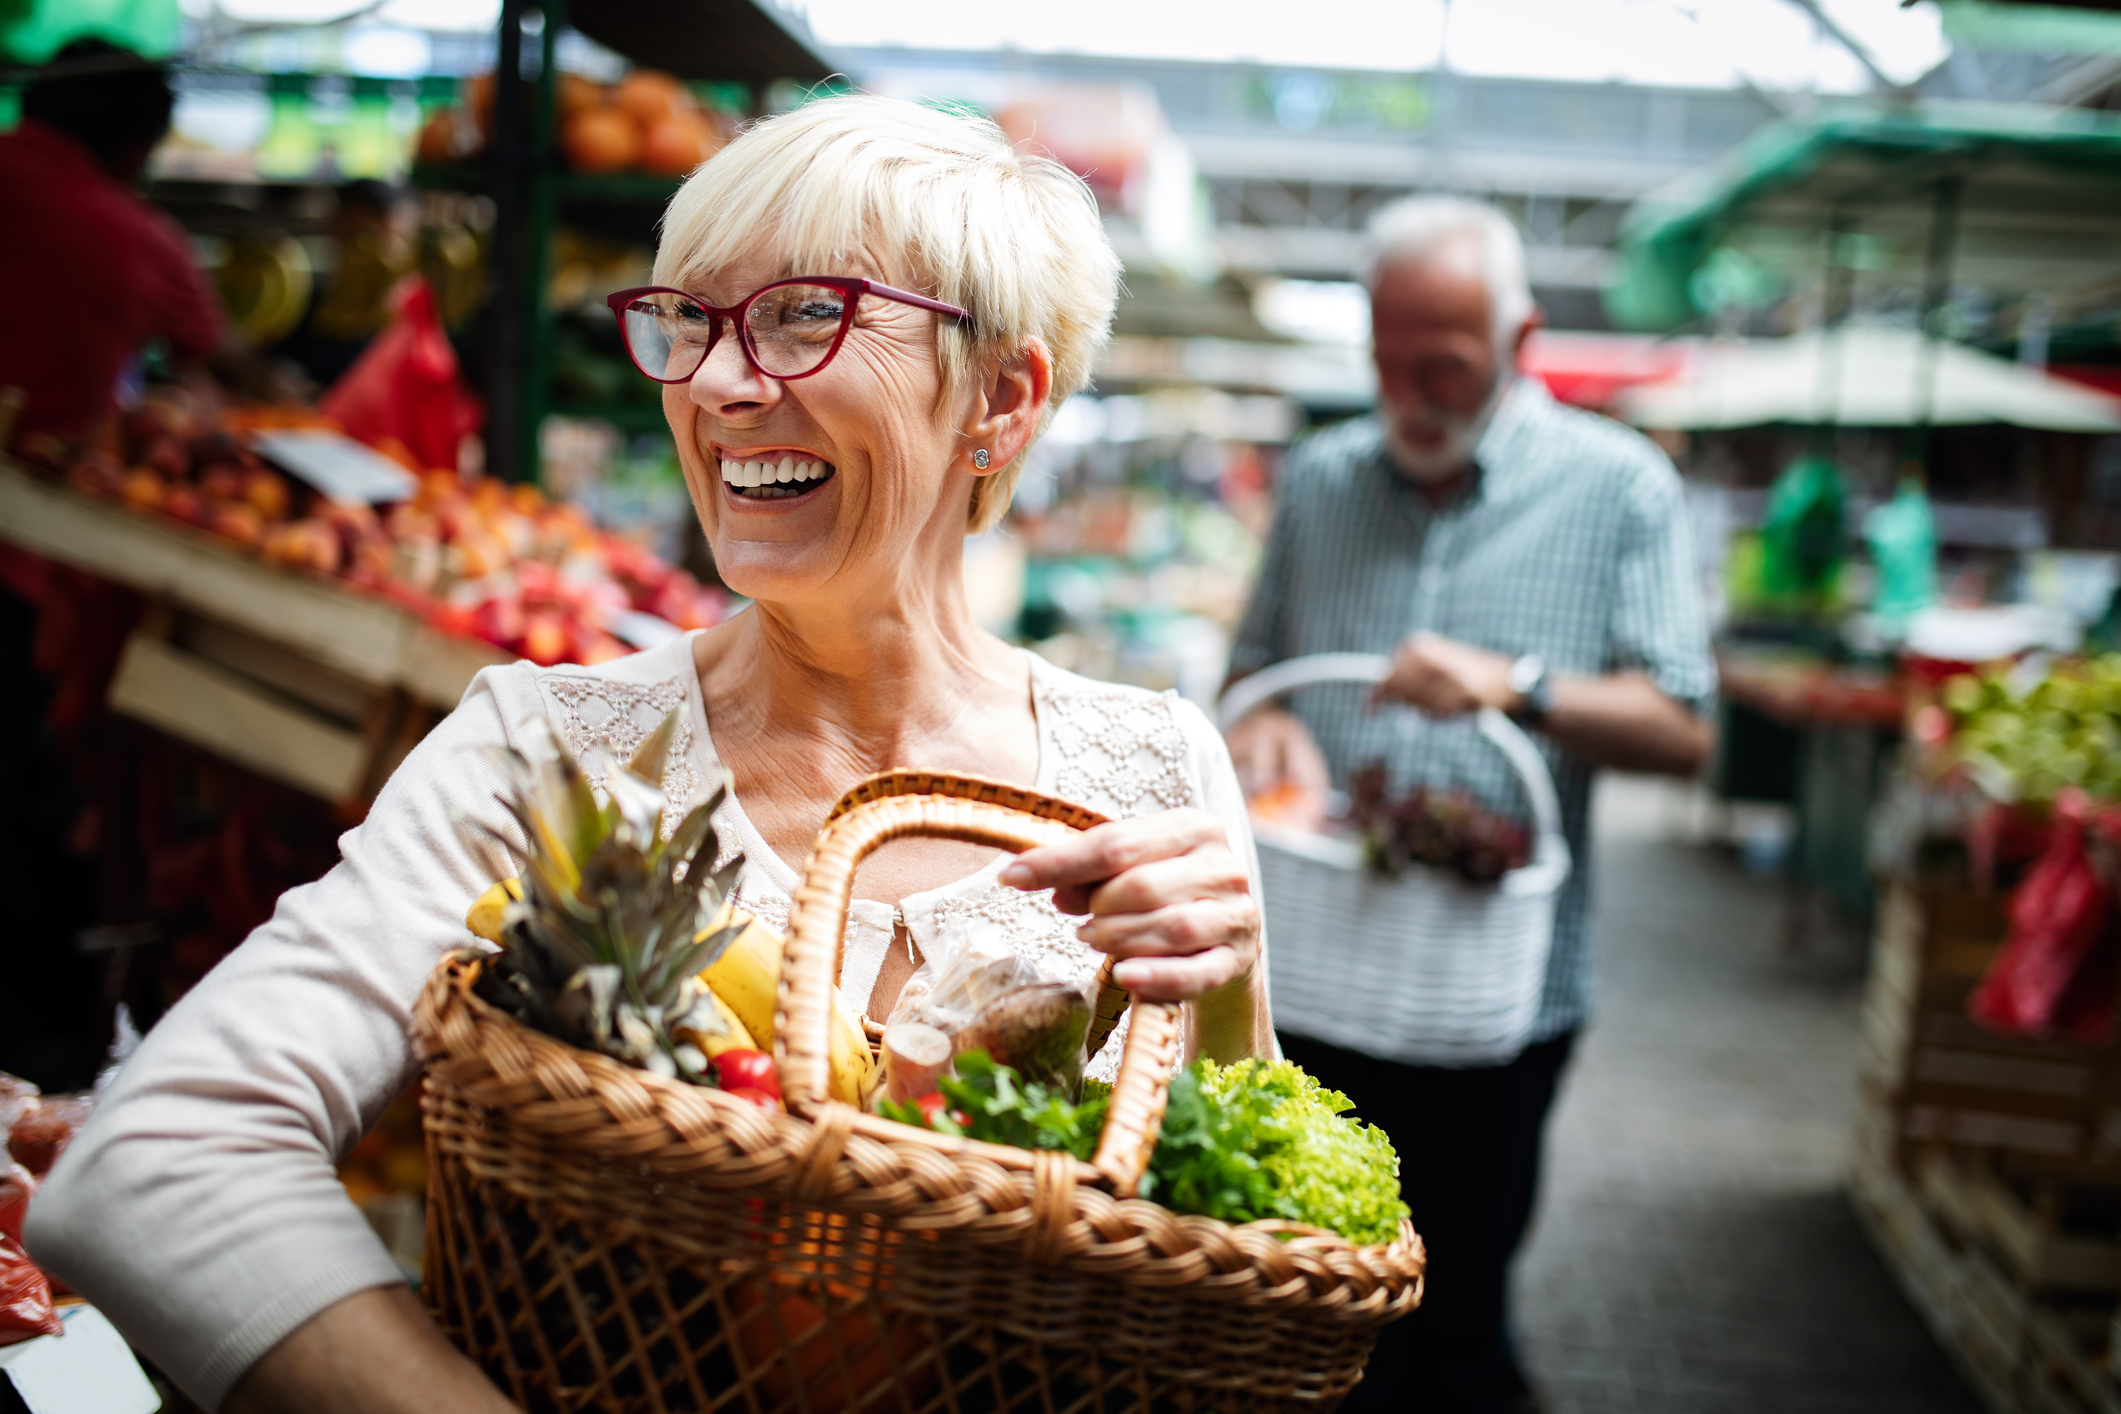 Senior couple buying fresh vegetables and fruits together.